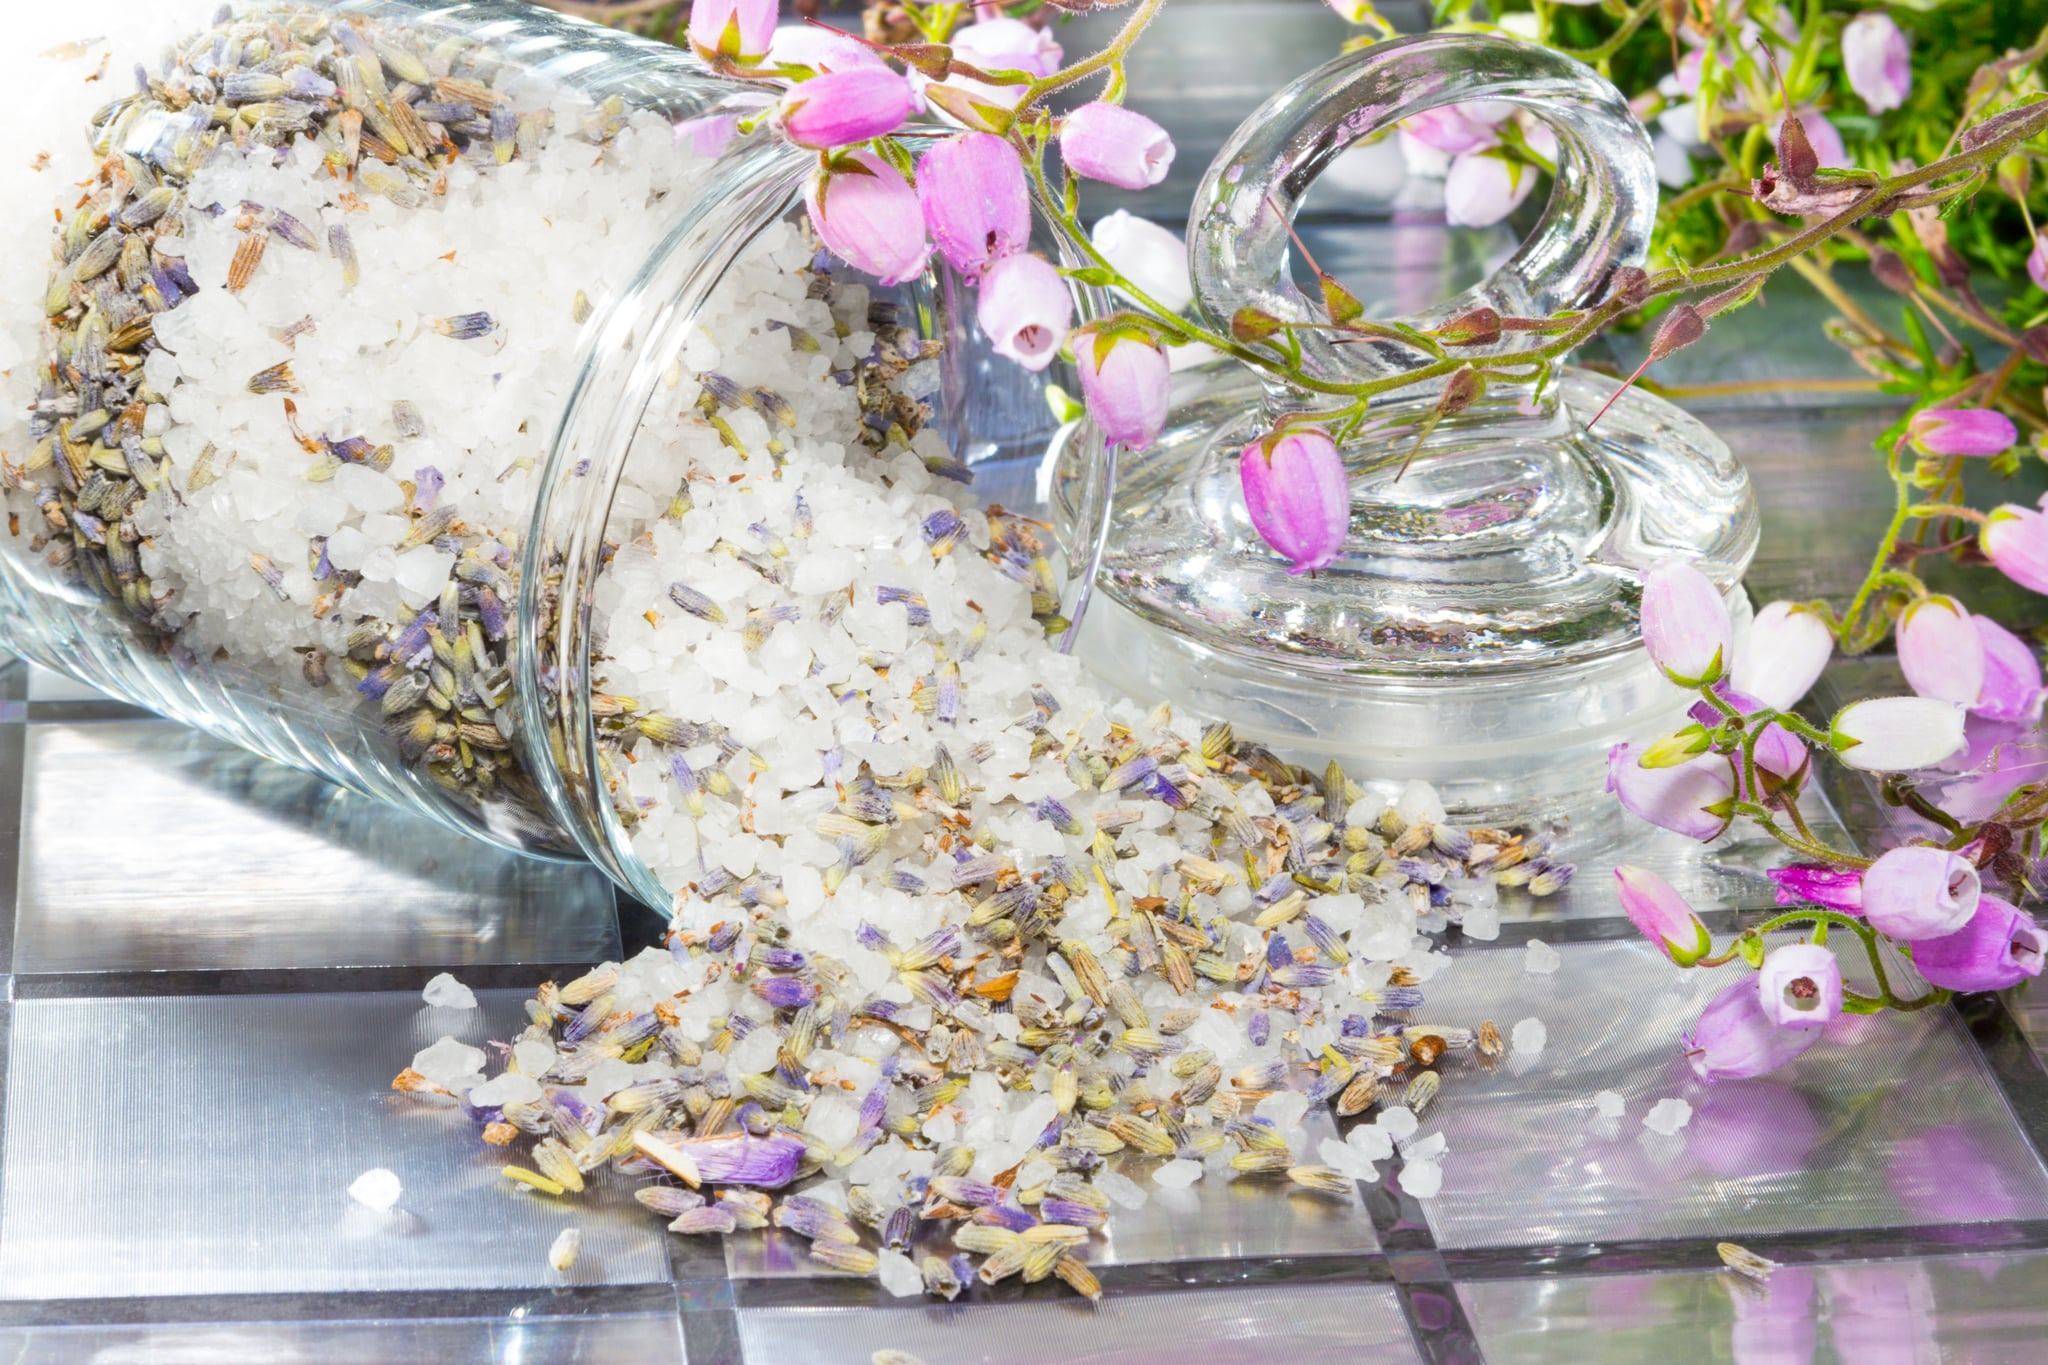 How to make homemade potpourri popsugar smart living when your sweet bouquet of flowers isnt as fresh as it used to be instead of relinquishing to the trash give those flowers new life as pretty potpourri izmirmasajfo